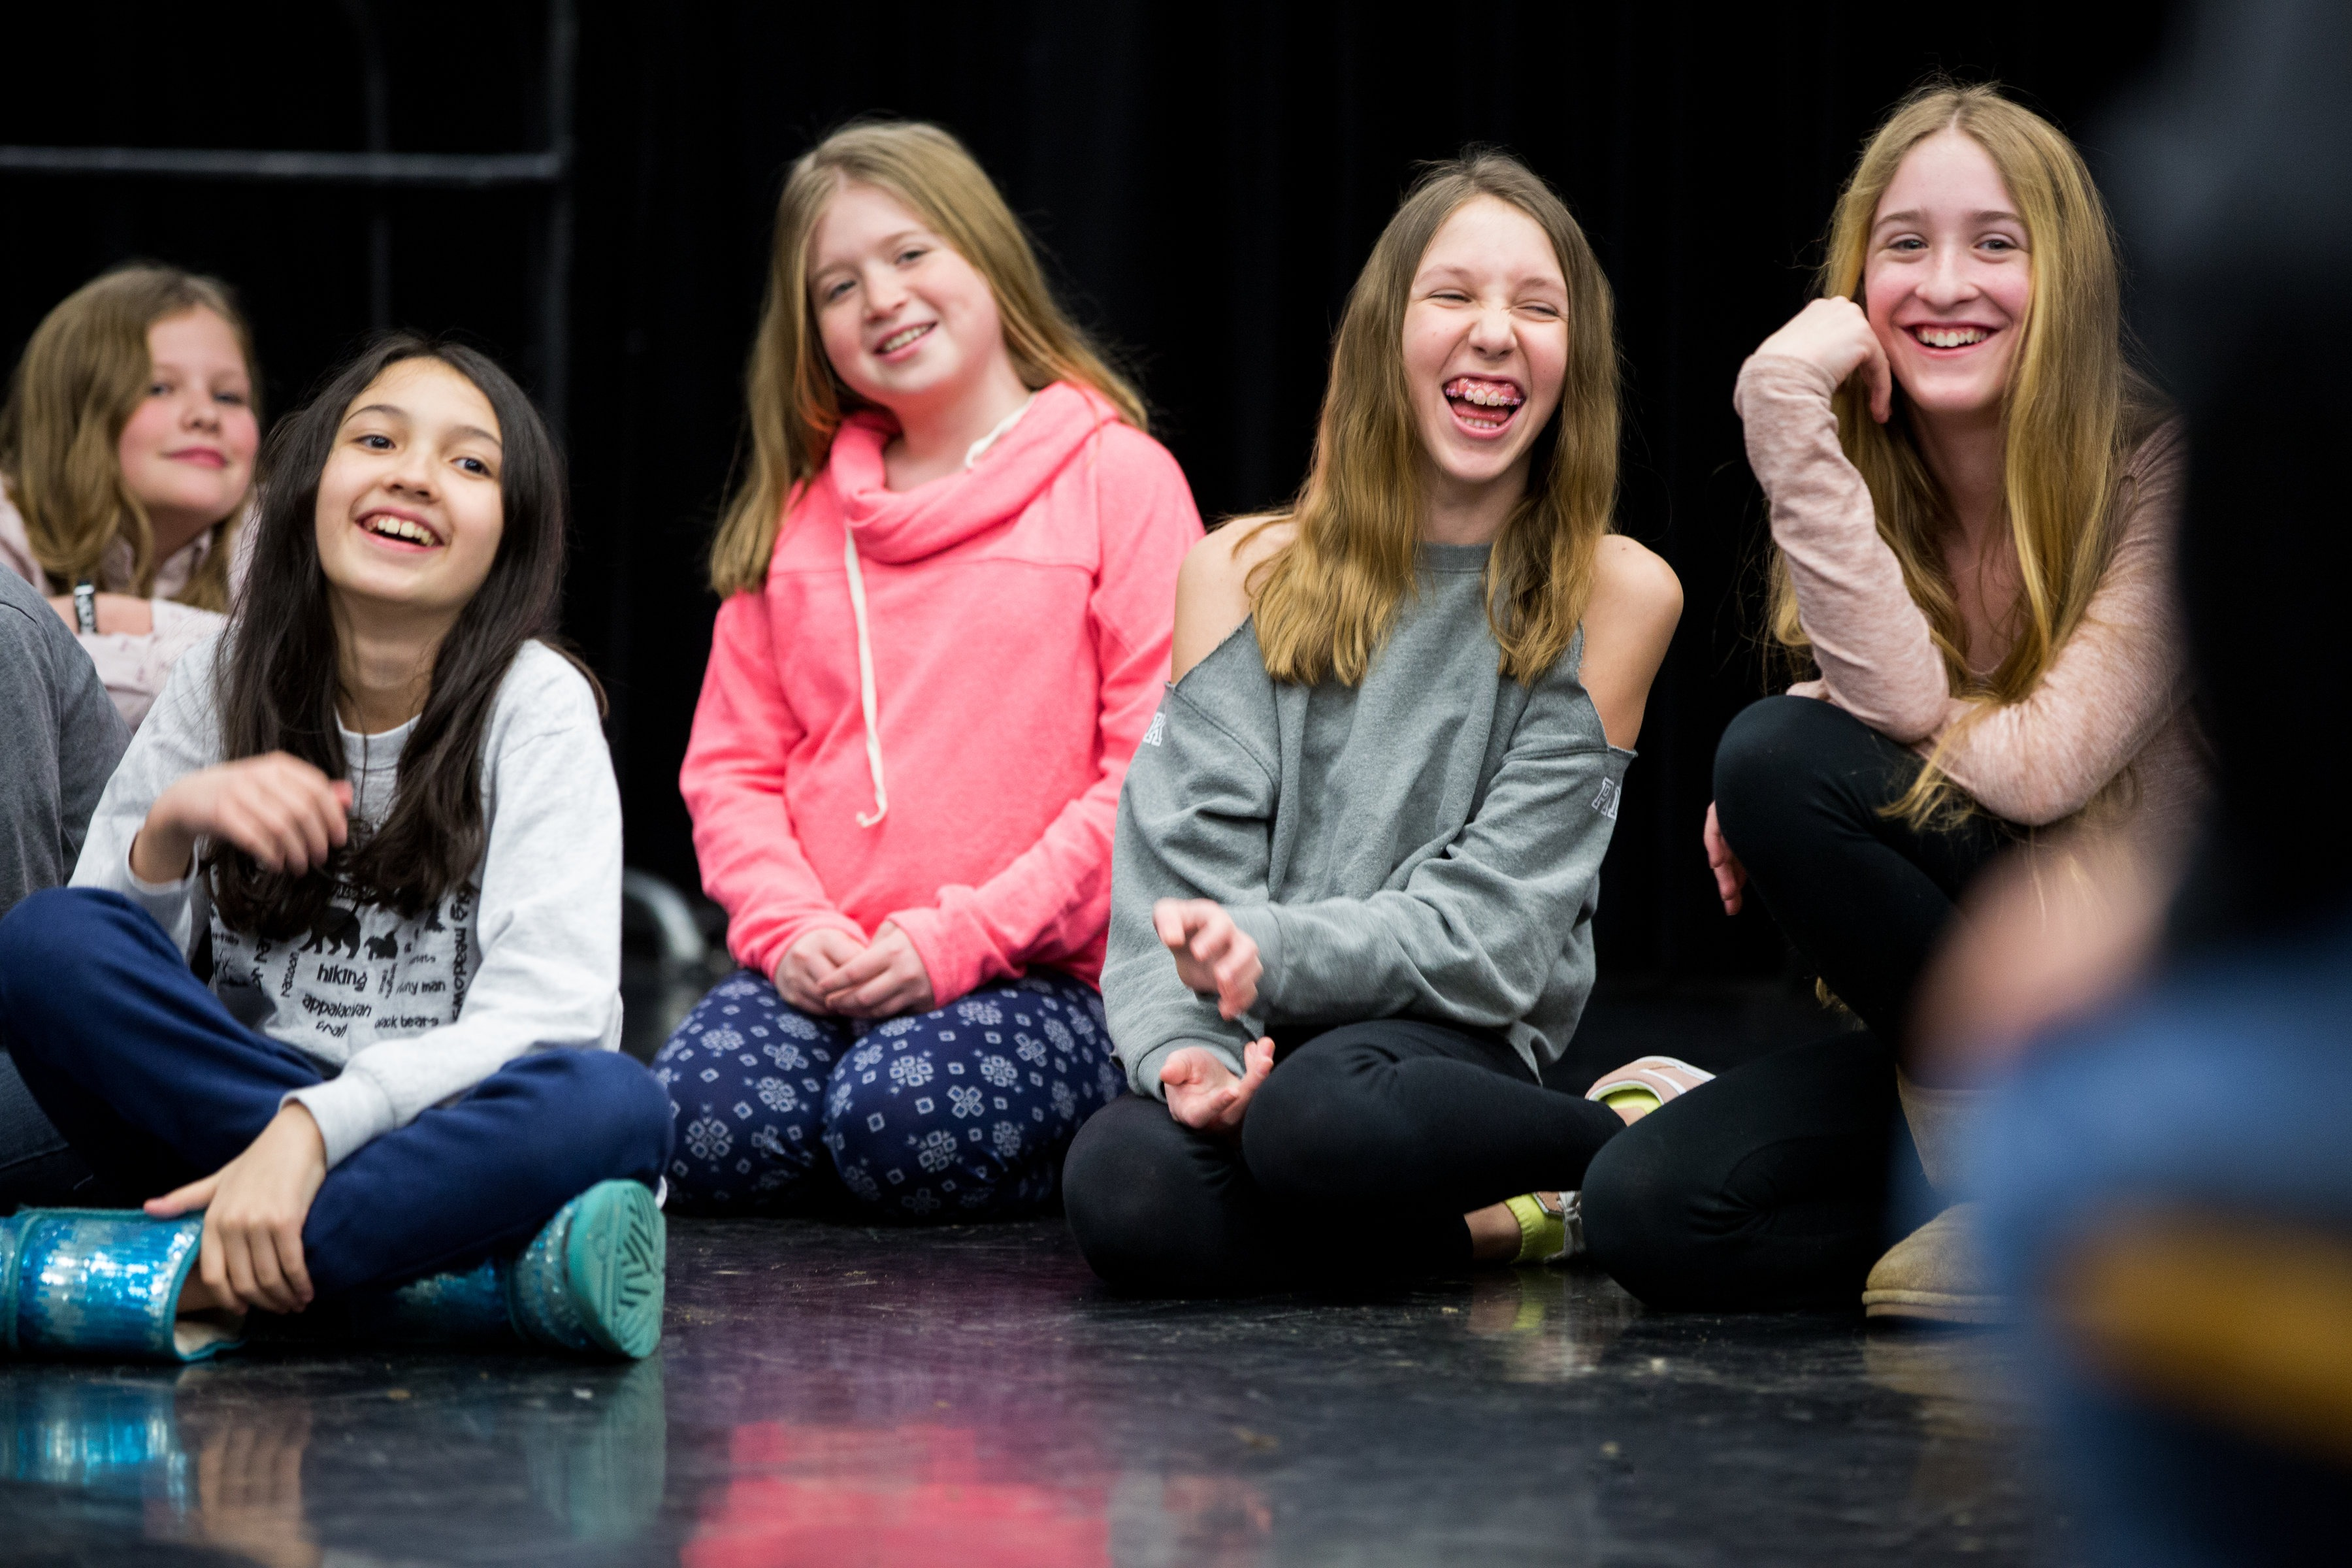 acting classes for kids in center for theater arts